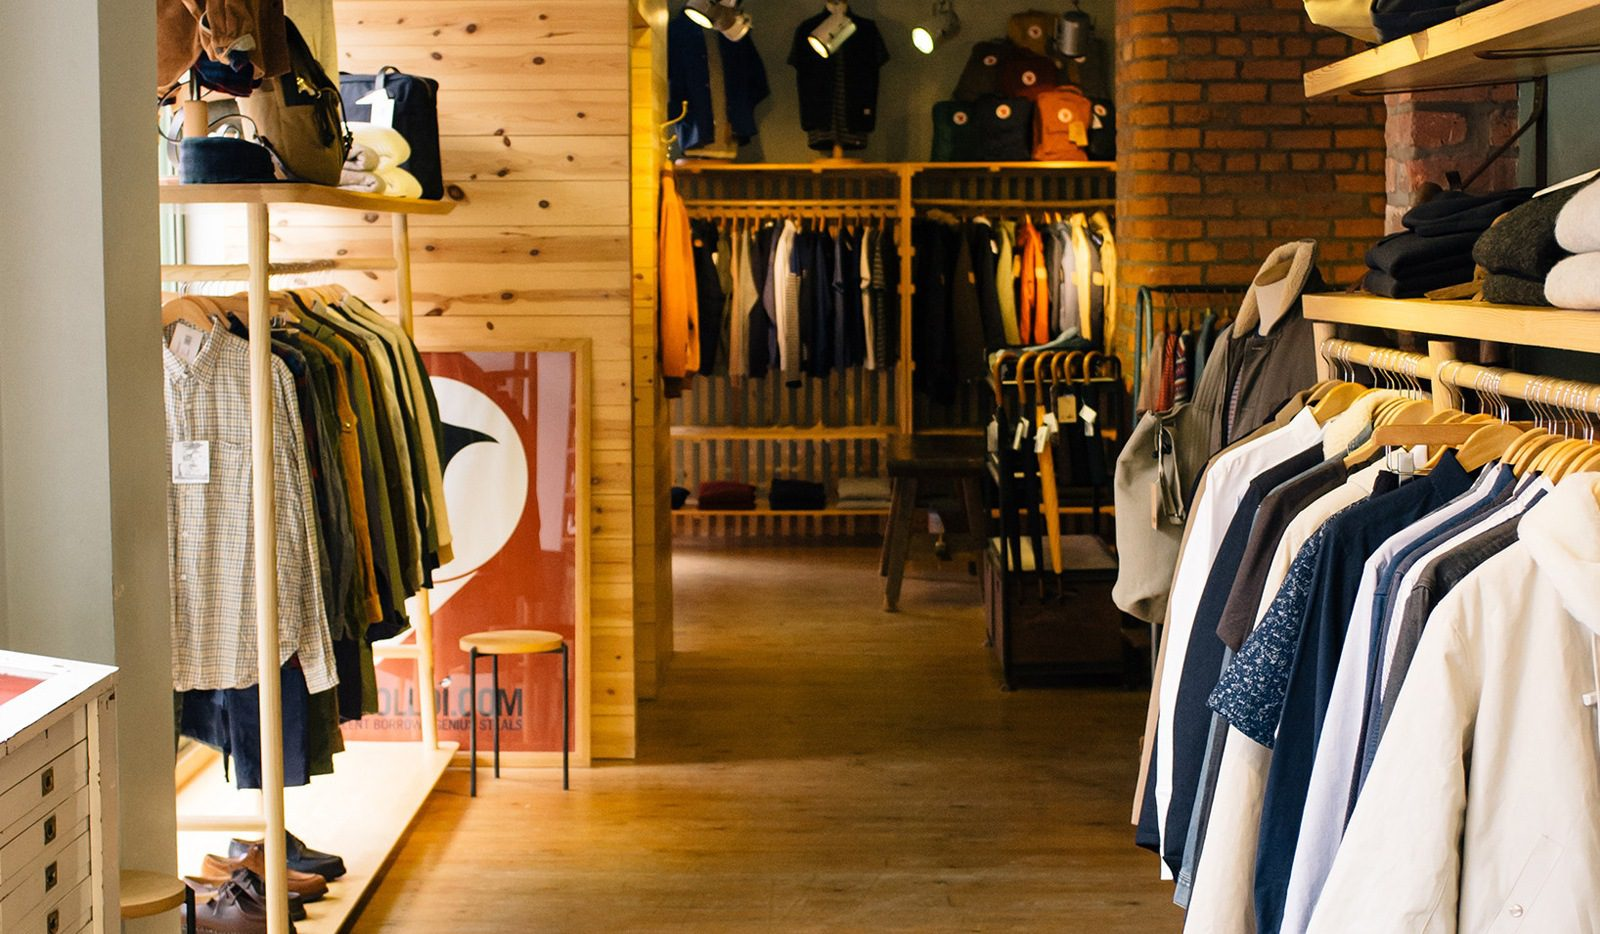 Talking Shop: The Independent UK Menswear Stores Worth A Visit - Ape to Gentleman